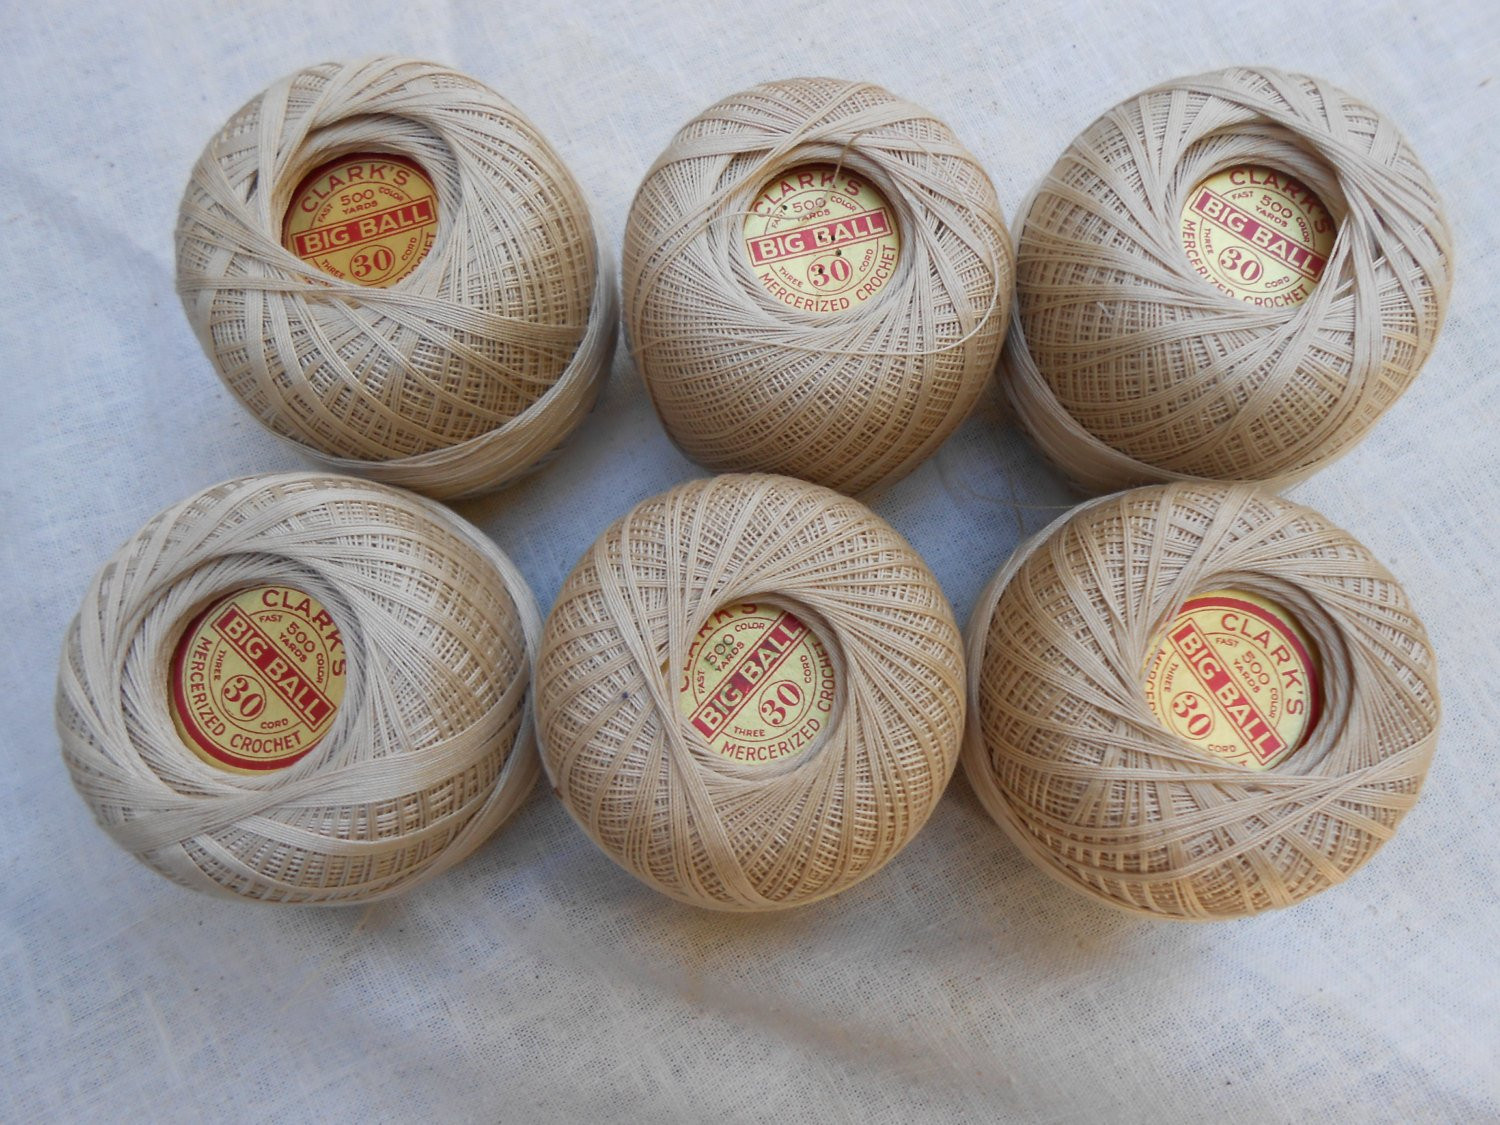 Crochet Thread Size 30 Inspirational Crochet or Tatting Thread Clarks 6 Balls Of 500 Yds Size 30 Of Awesome 45 Photos Crochet Thread Size 30